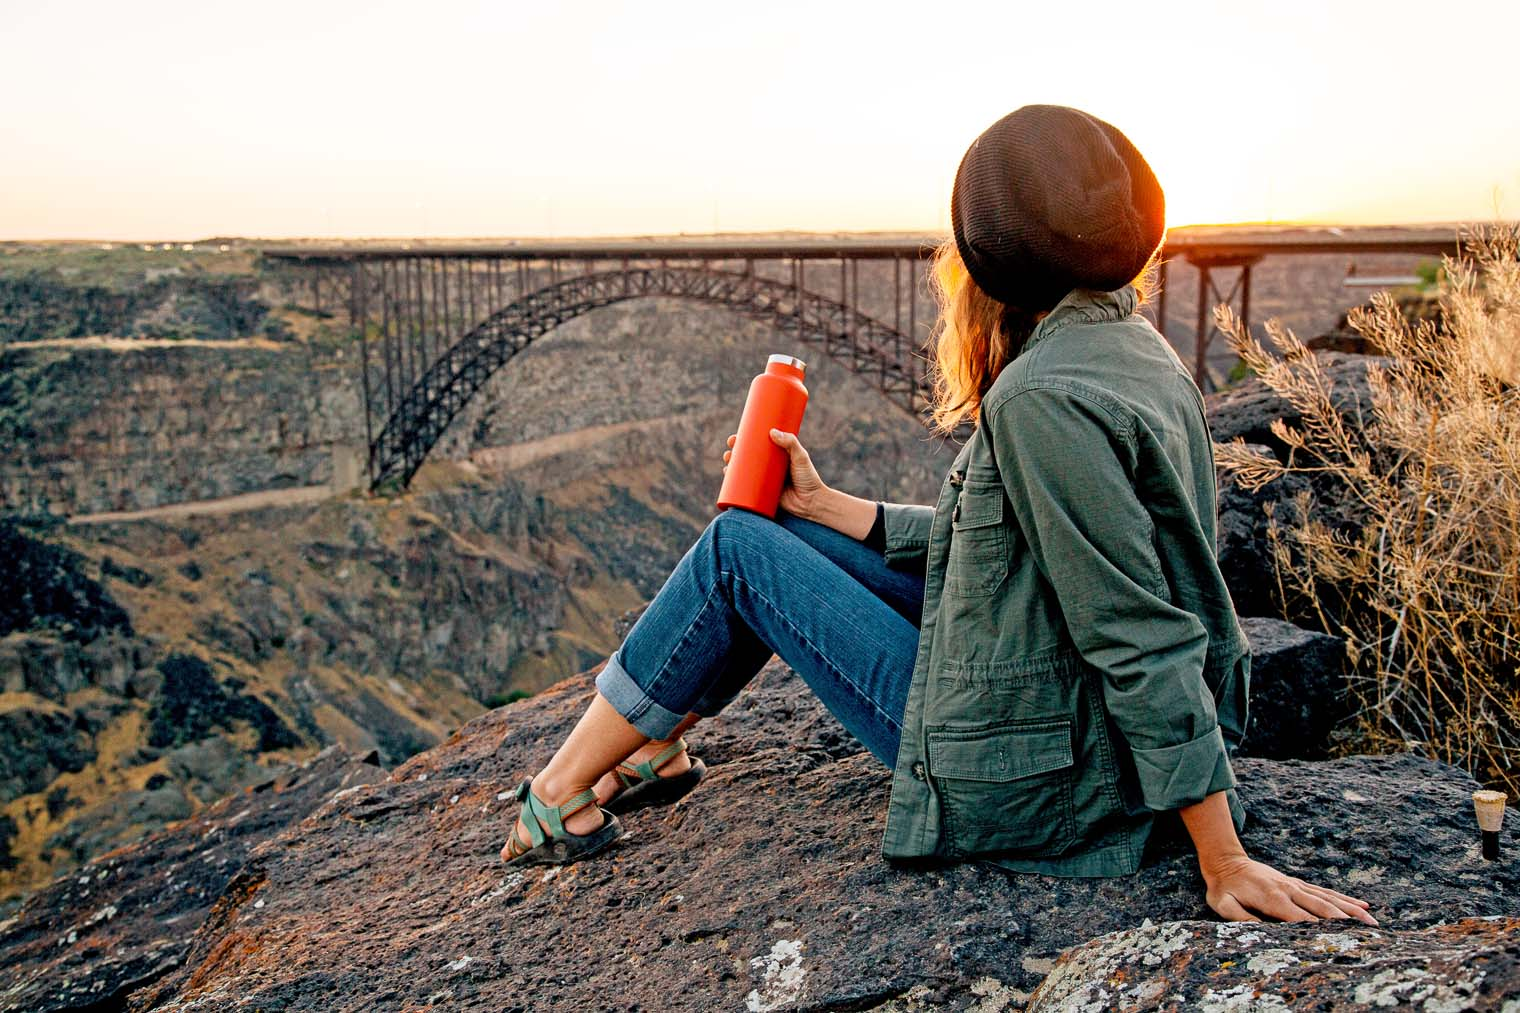 Sunrise over the Perrine Bridge, Twin Falls, Idaho